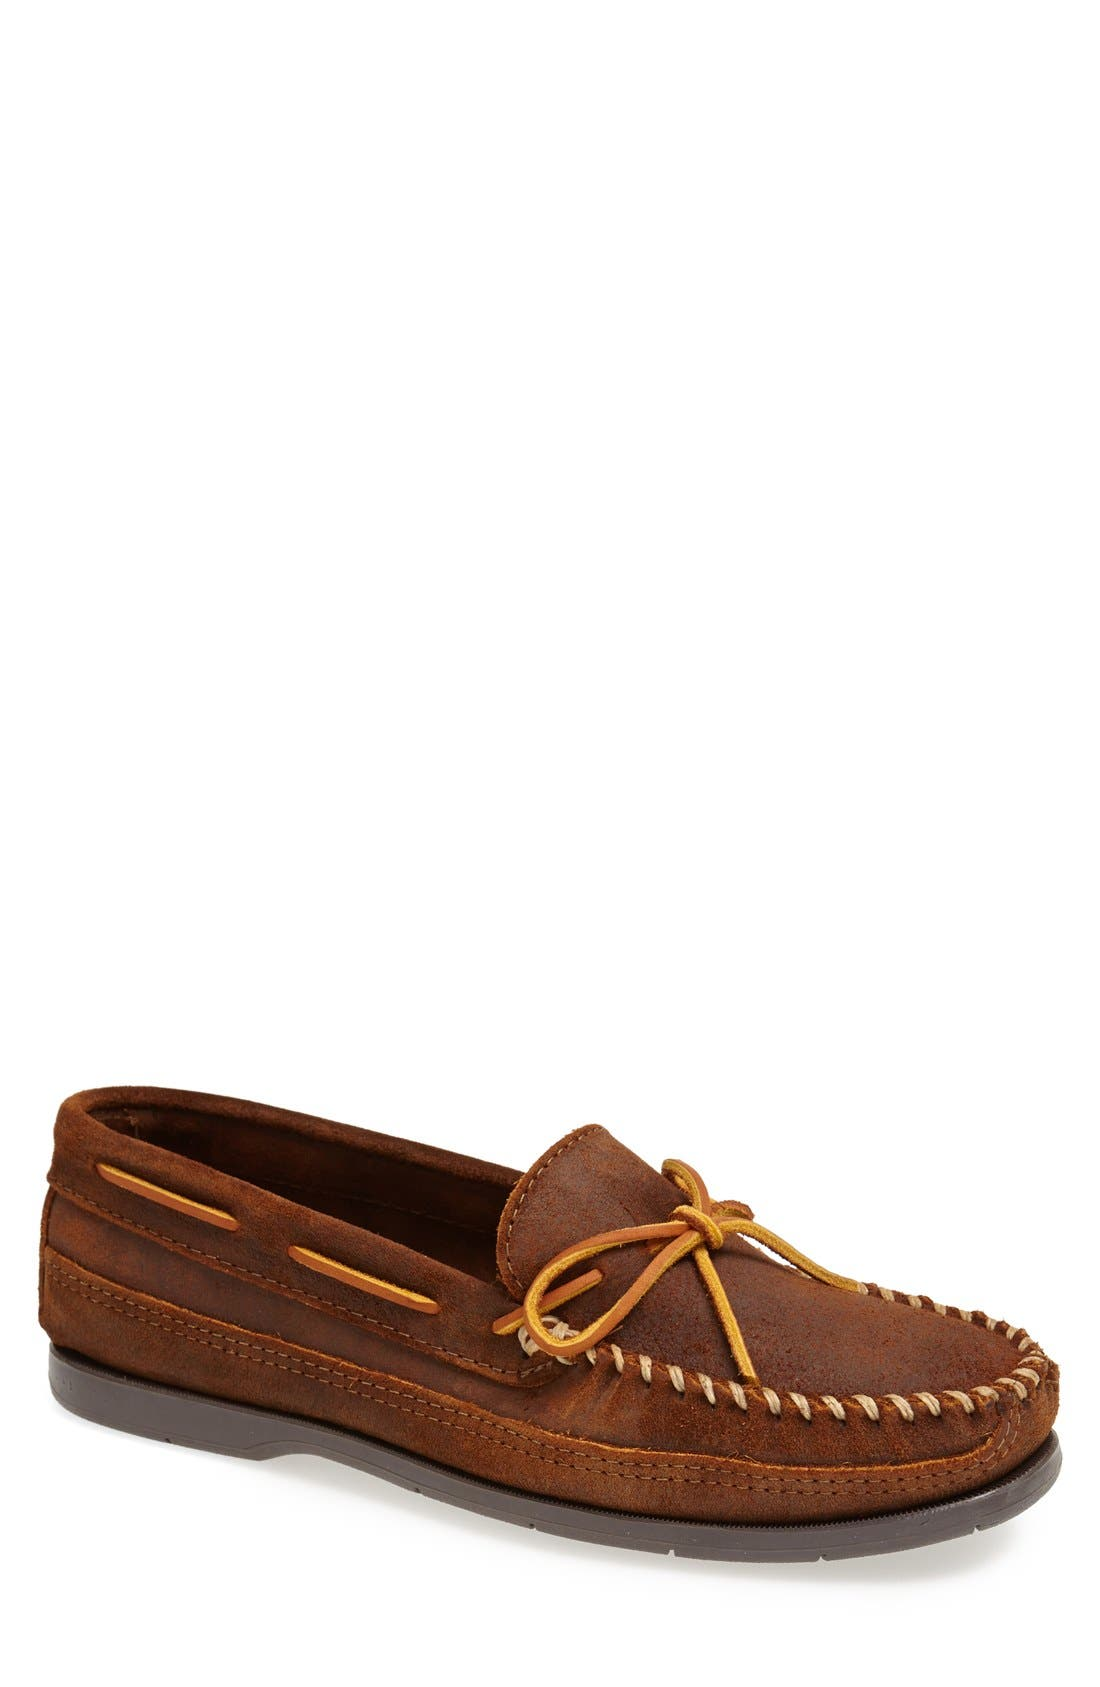 Leather Moccasin,                         Main,                         color, Brown Ruff